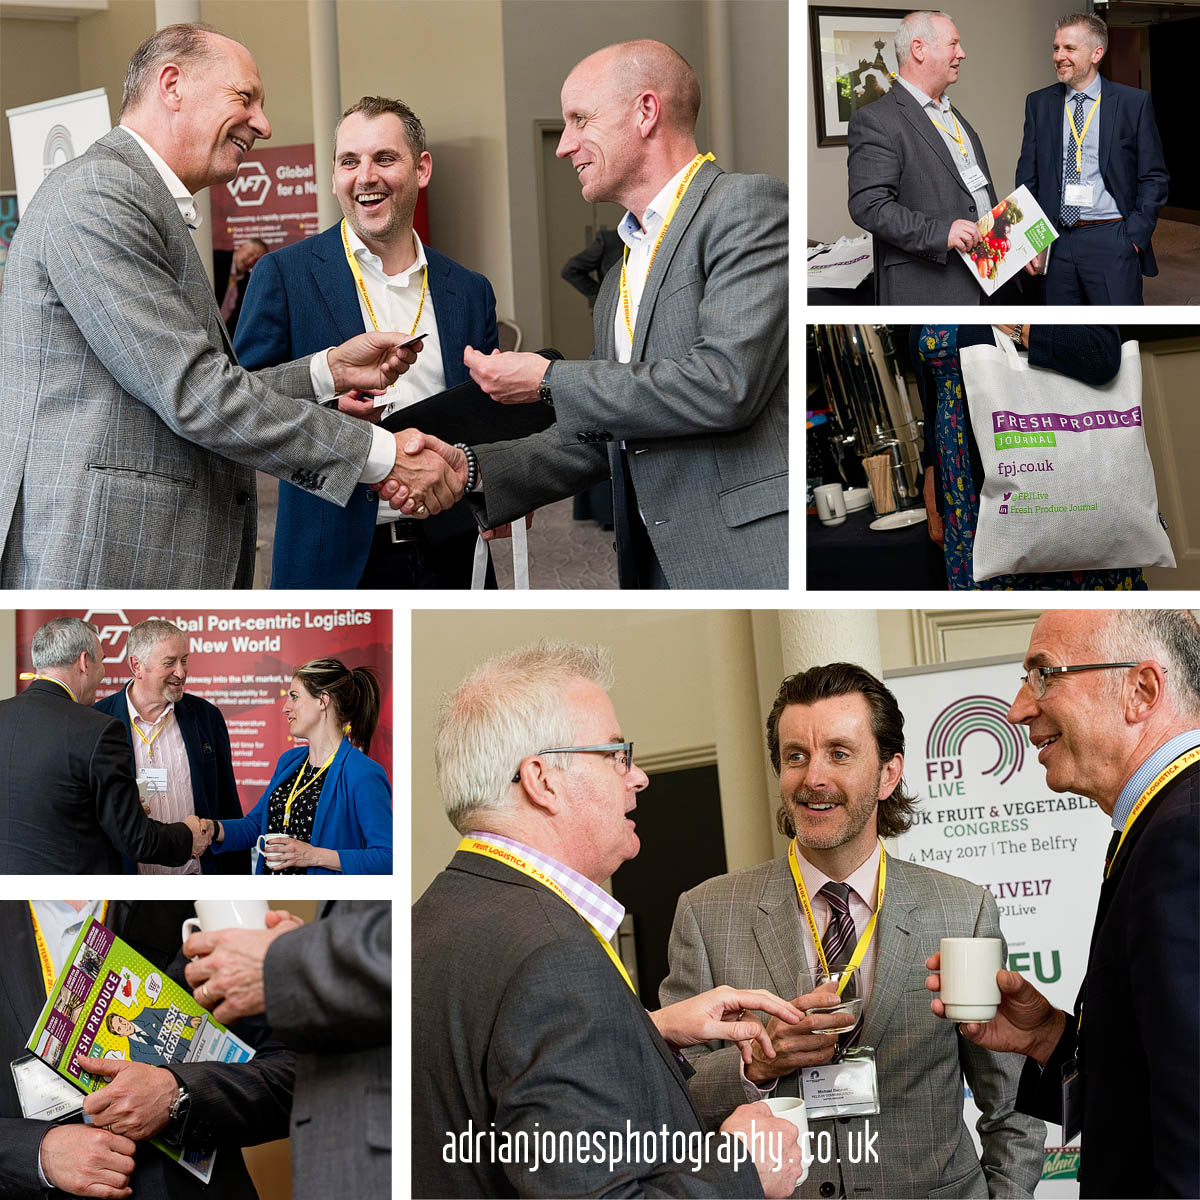 The-Belfry-Conference-Event-Photographer-Birmingham-Midlands-4